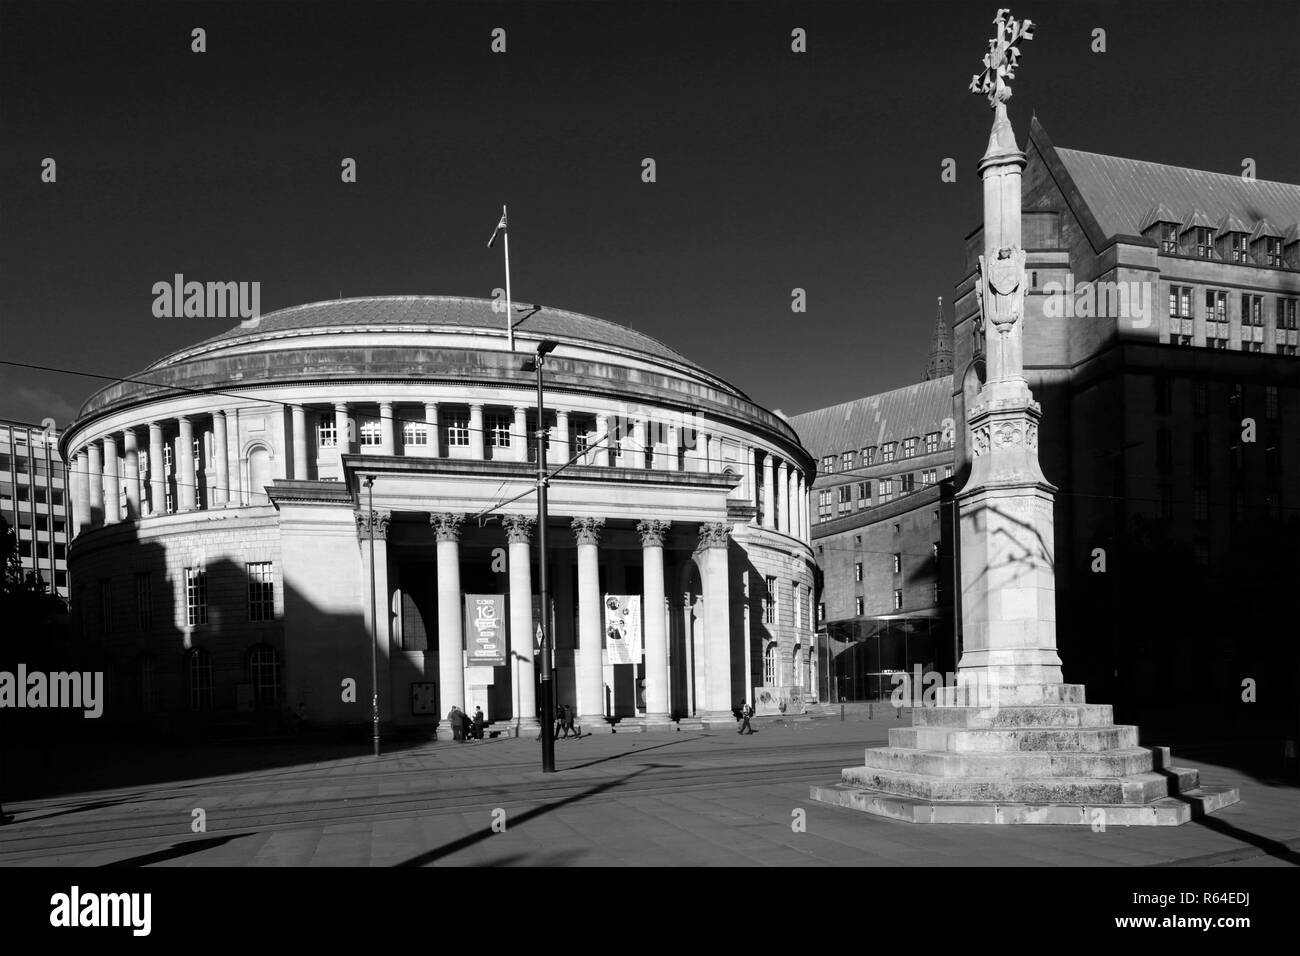 Manchester Central Library, St Peters Square, Manchester City, Lancashire, England, UK - Stock Image